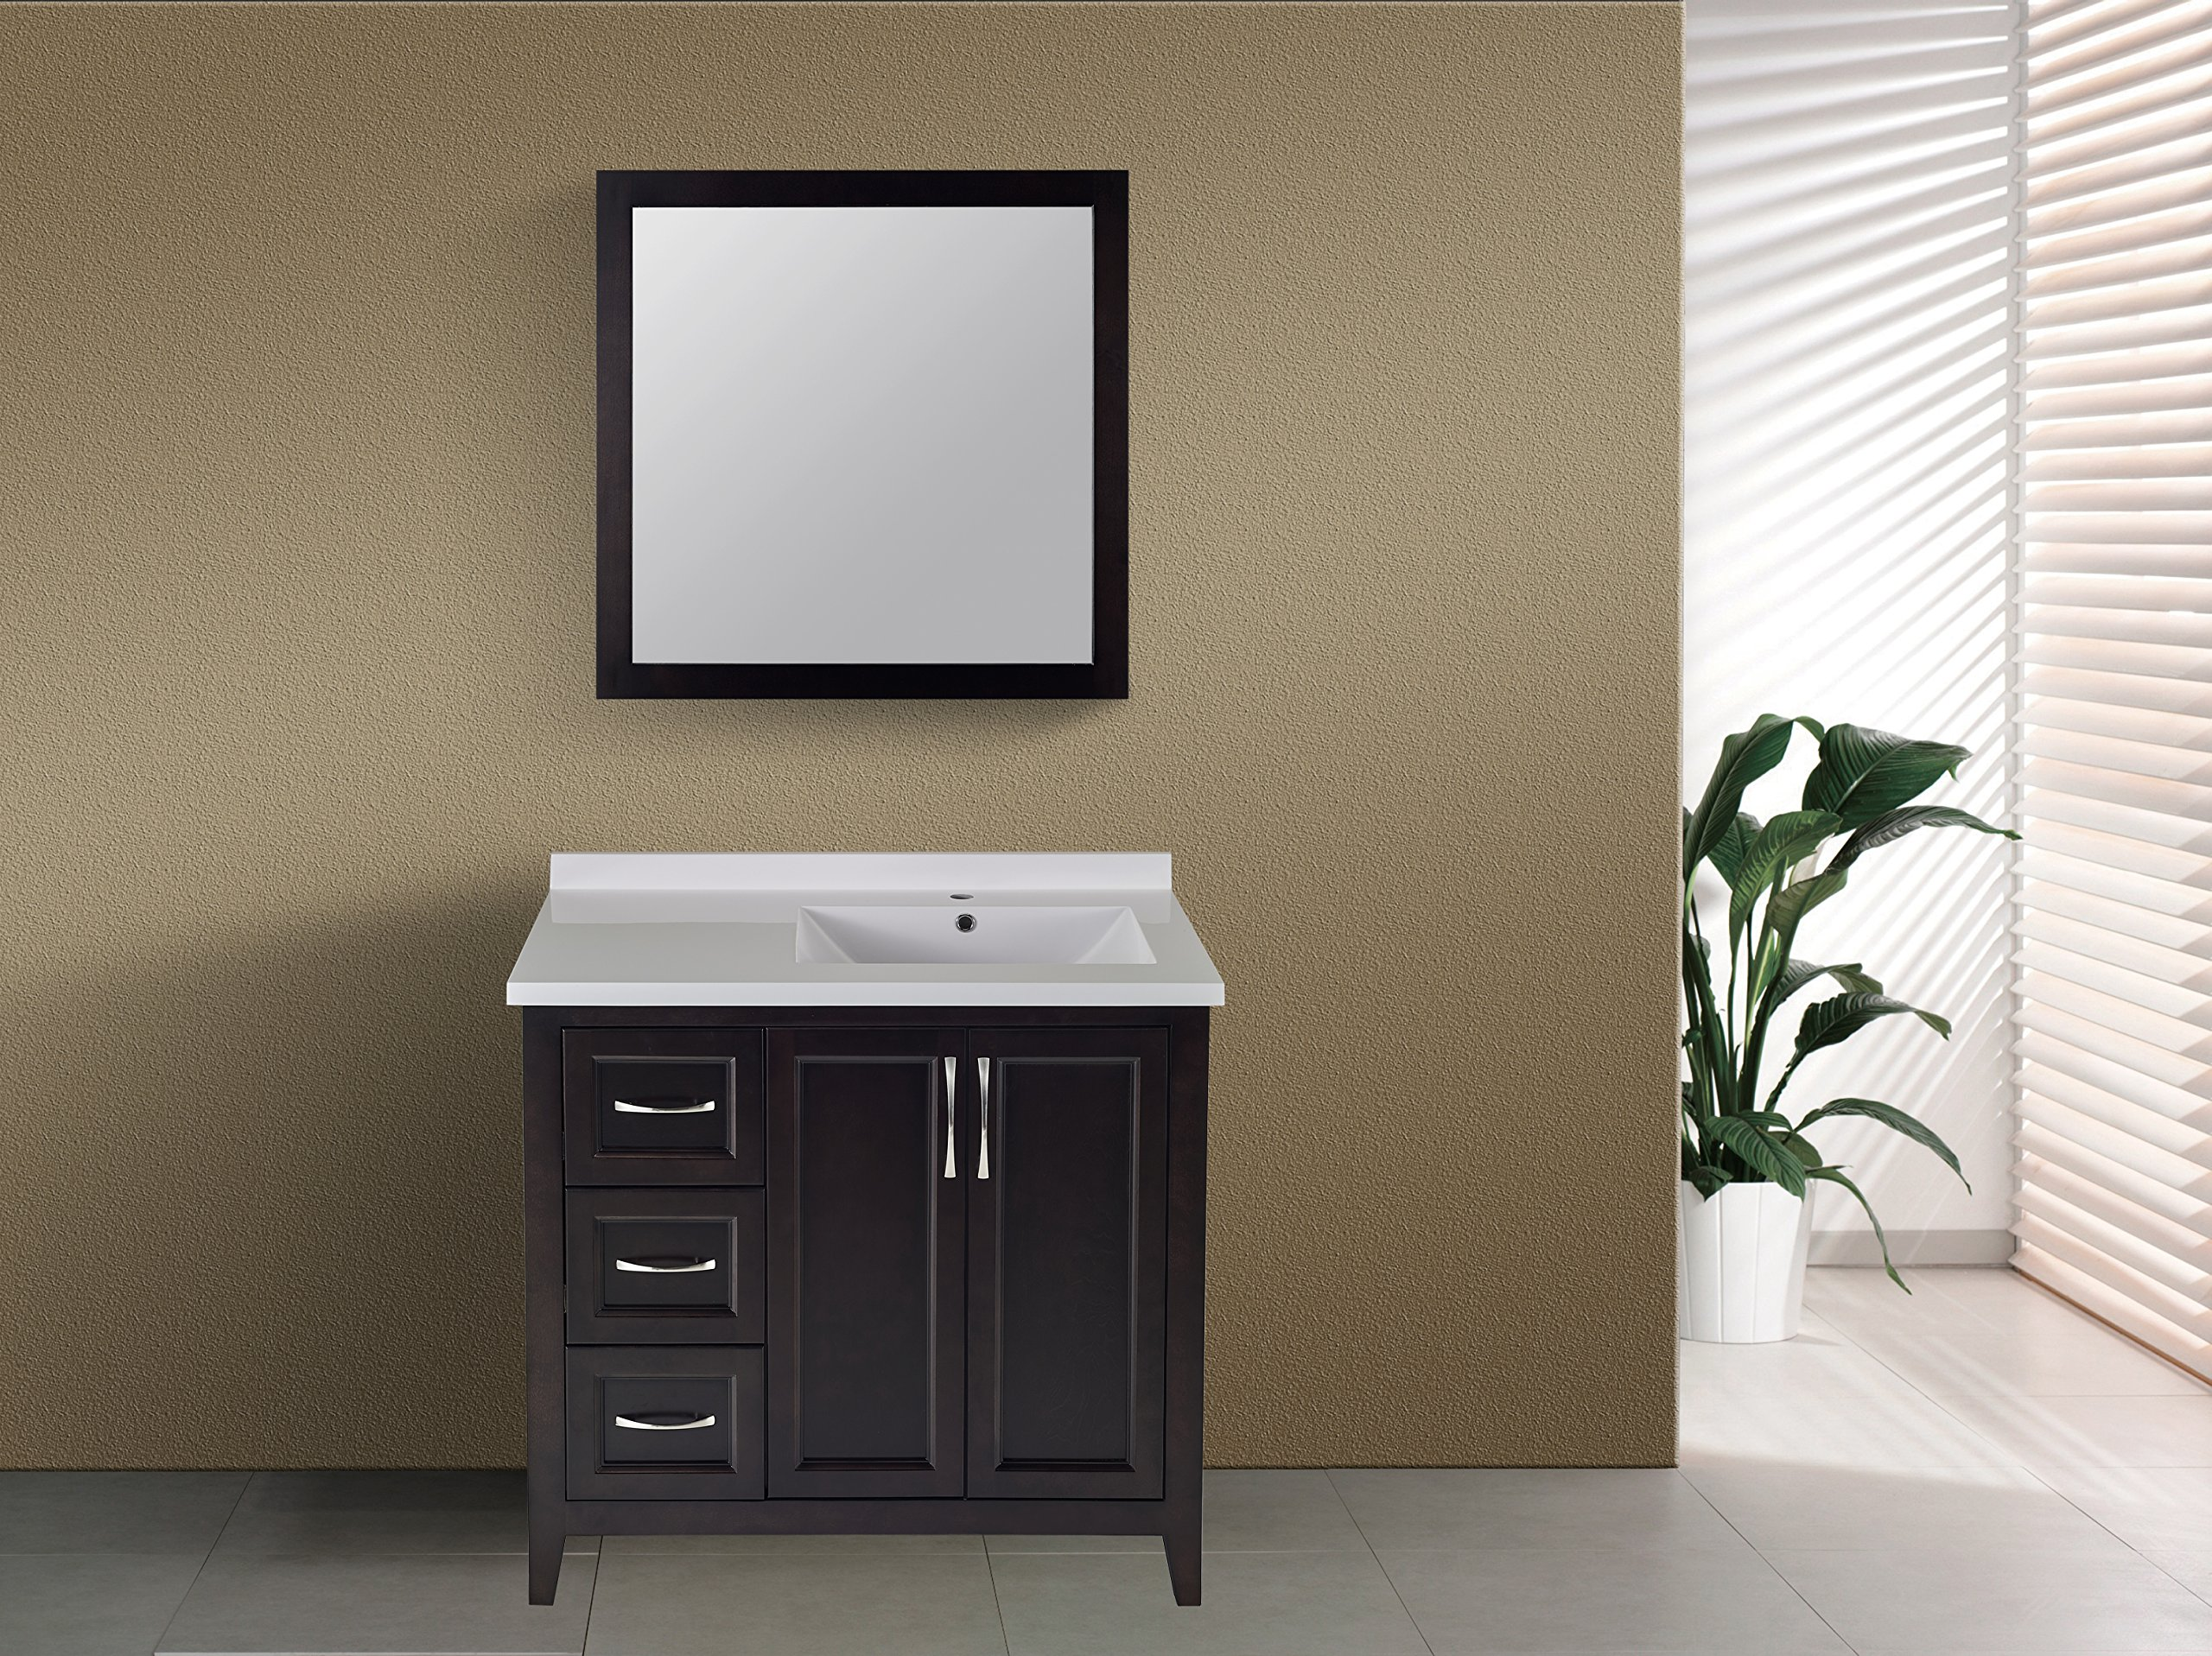 Winette New 36'' Espresso Single Bathroom Vanity Set with One Piece Built White Cultured Marble Countertop and Sink, 2 Doors, 3 Drawers, Matching Mirror A-WVM36E Sold Separately